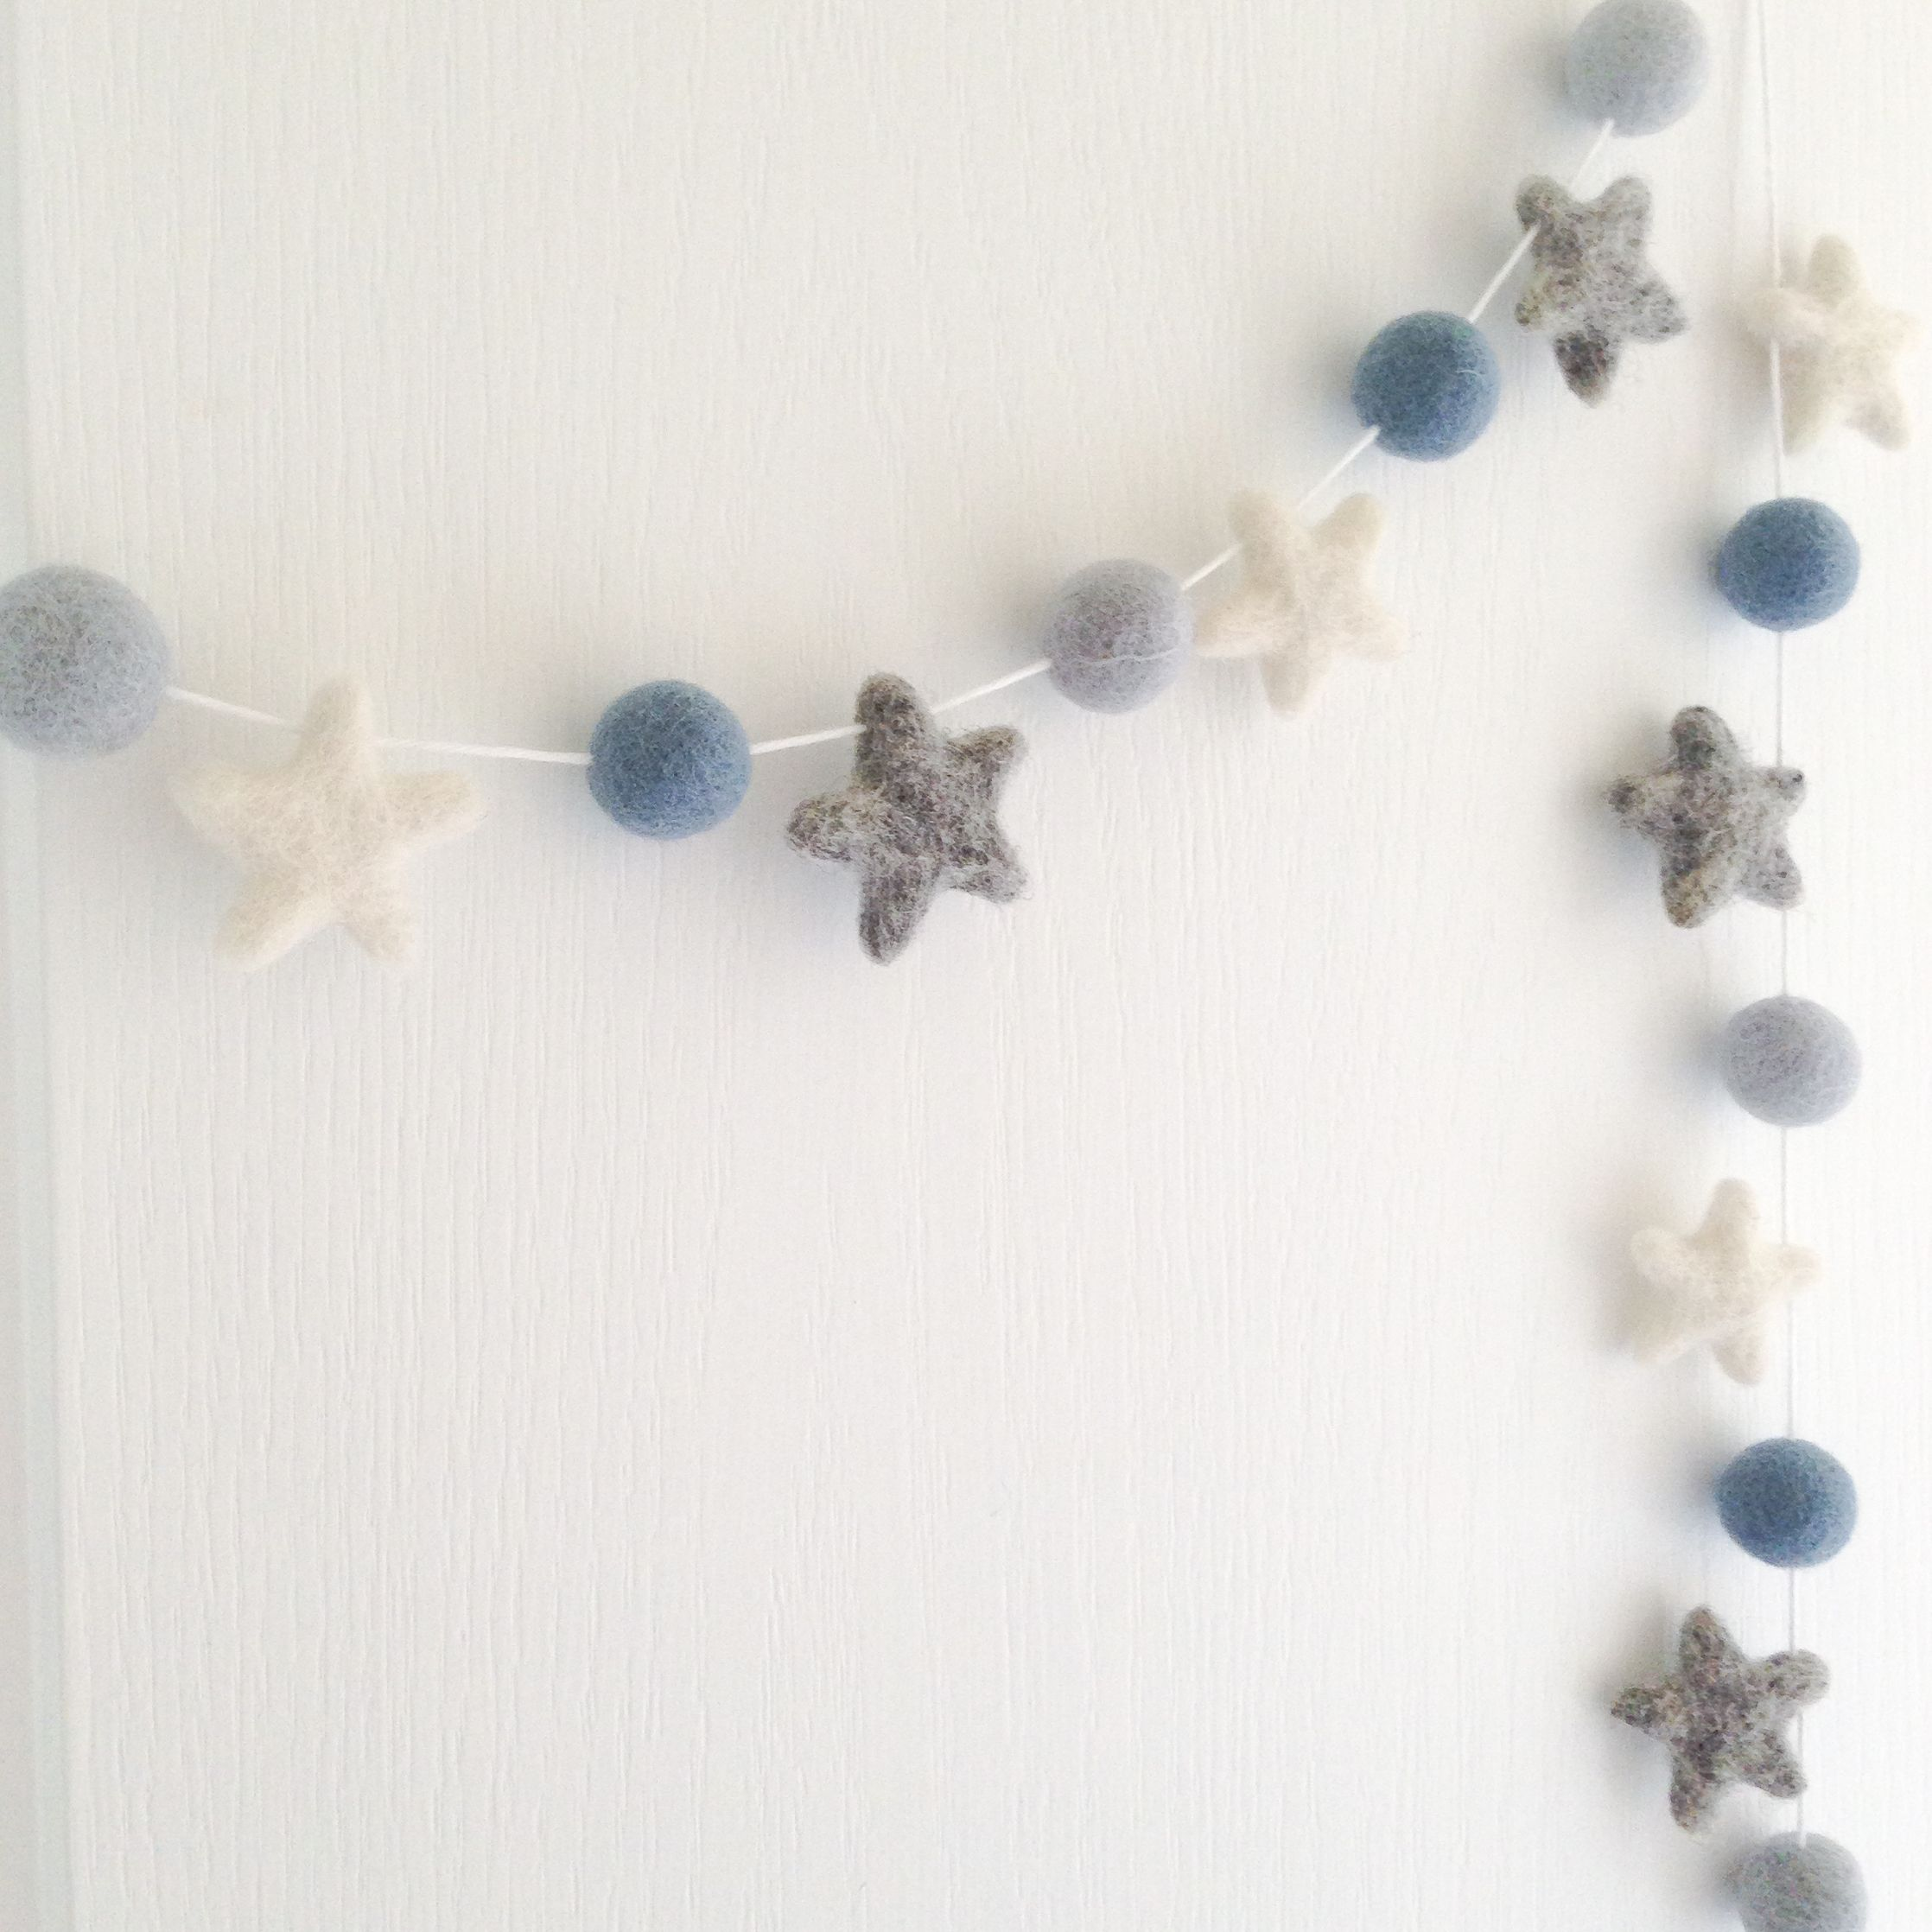 Froggies nursery wall decals by couture d 233 co - Beautiful Star Felt Ball Garland From Stone And Co Nursery Decoration